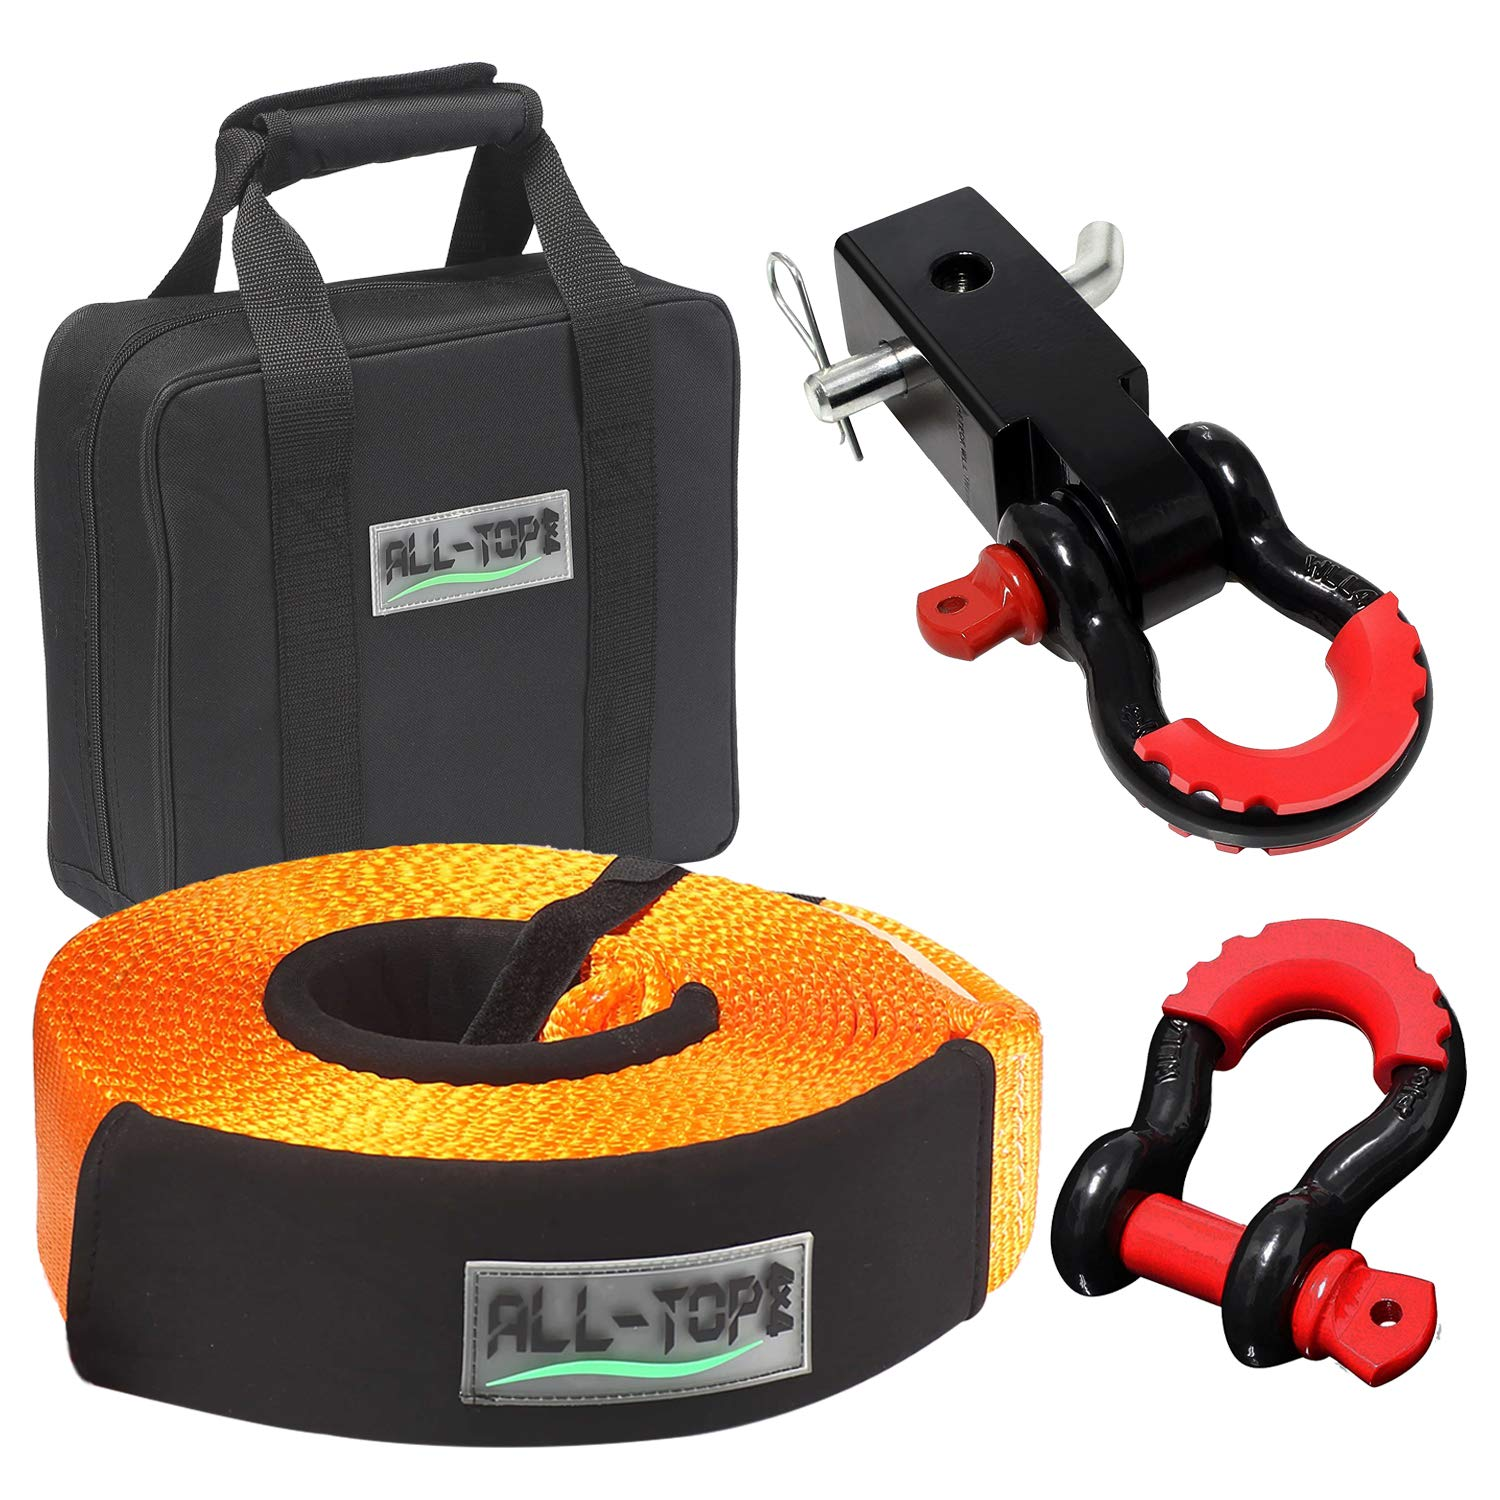 ALL-TOP 4x4 Recovery Gear Kit with Hitch Receiver: 3 inch x 30 ft (32,000 lbs) 100% Nylon Snatch Strap + 2'' Aluminium Shackle Hitch Receiver + 3/4 Heavy Duty D Ring Shackles (2pcs) +Storage Bag